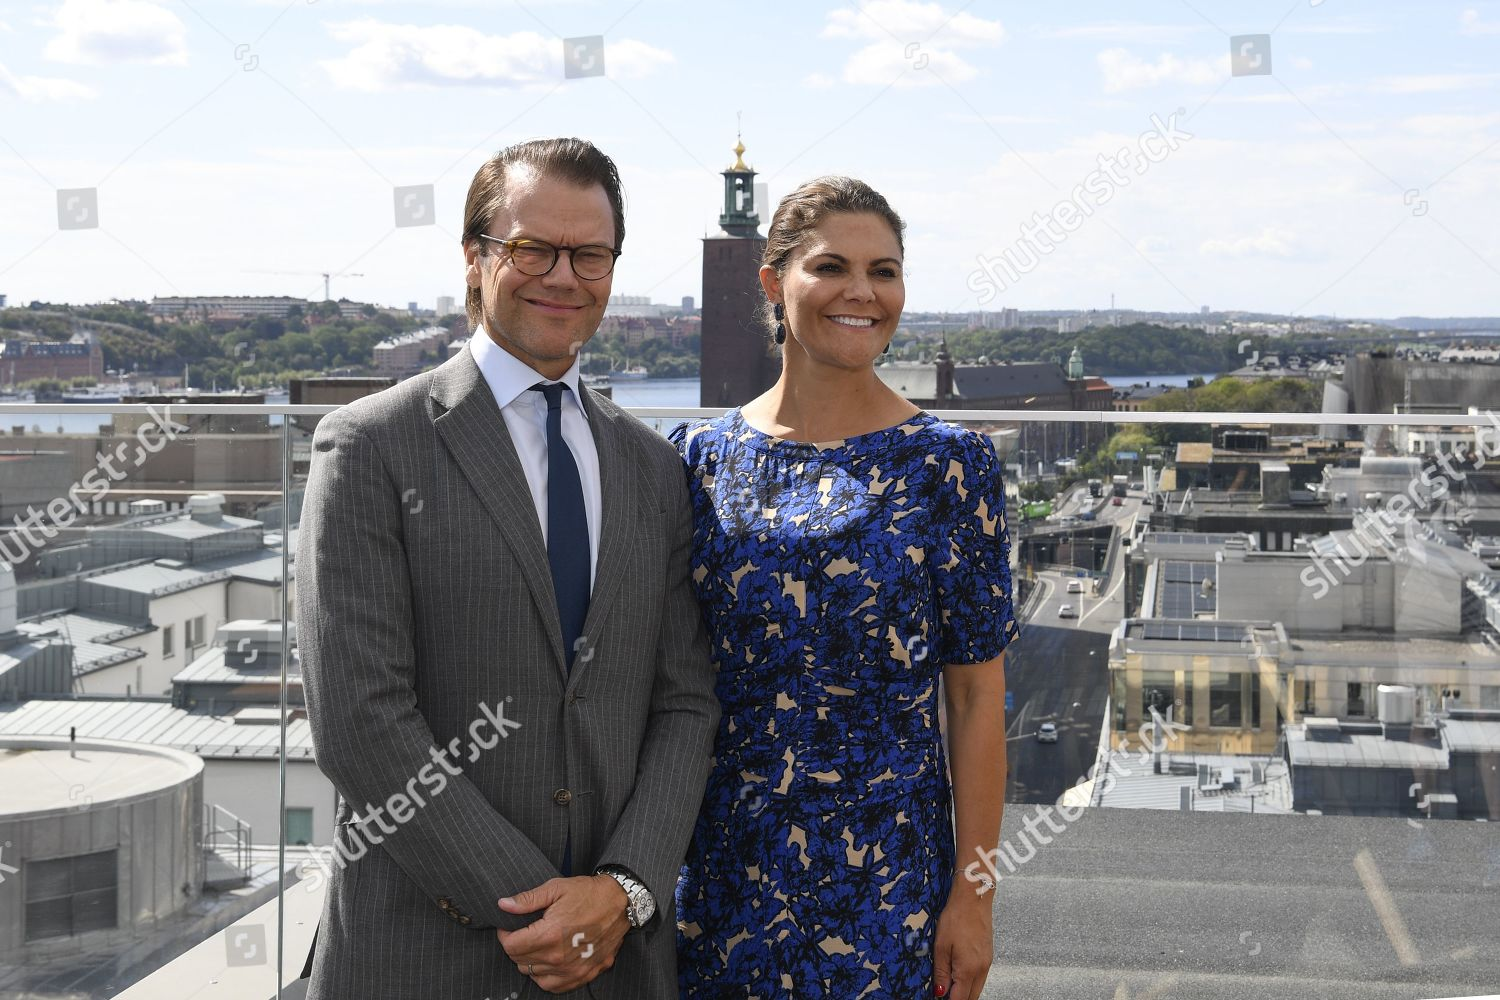 prince-daniel-and-crown-princess-victoria-at-visita-stockholm-sweden-shutterstock-editorial-10750019d.jpg